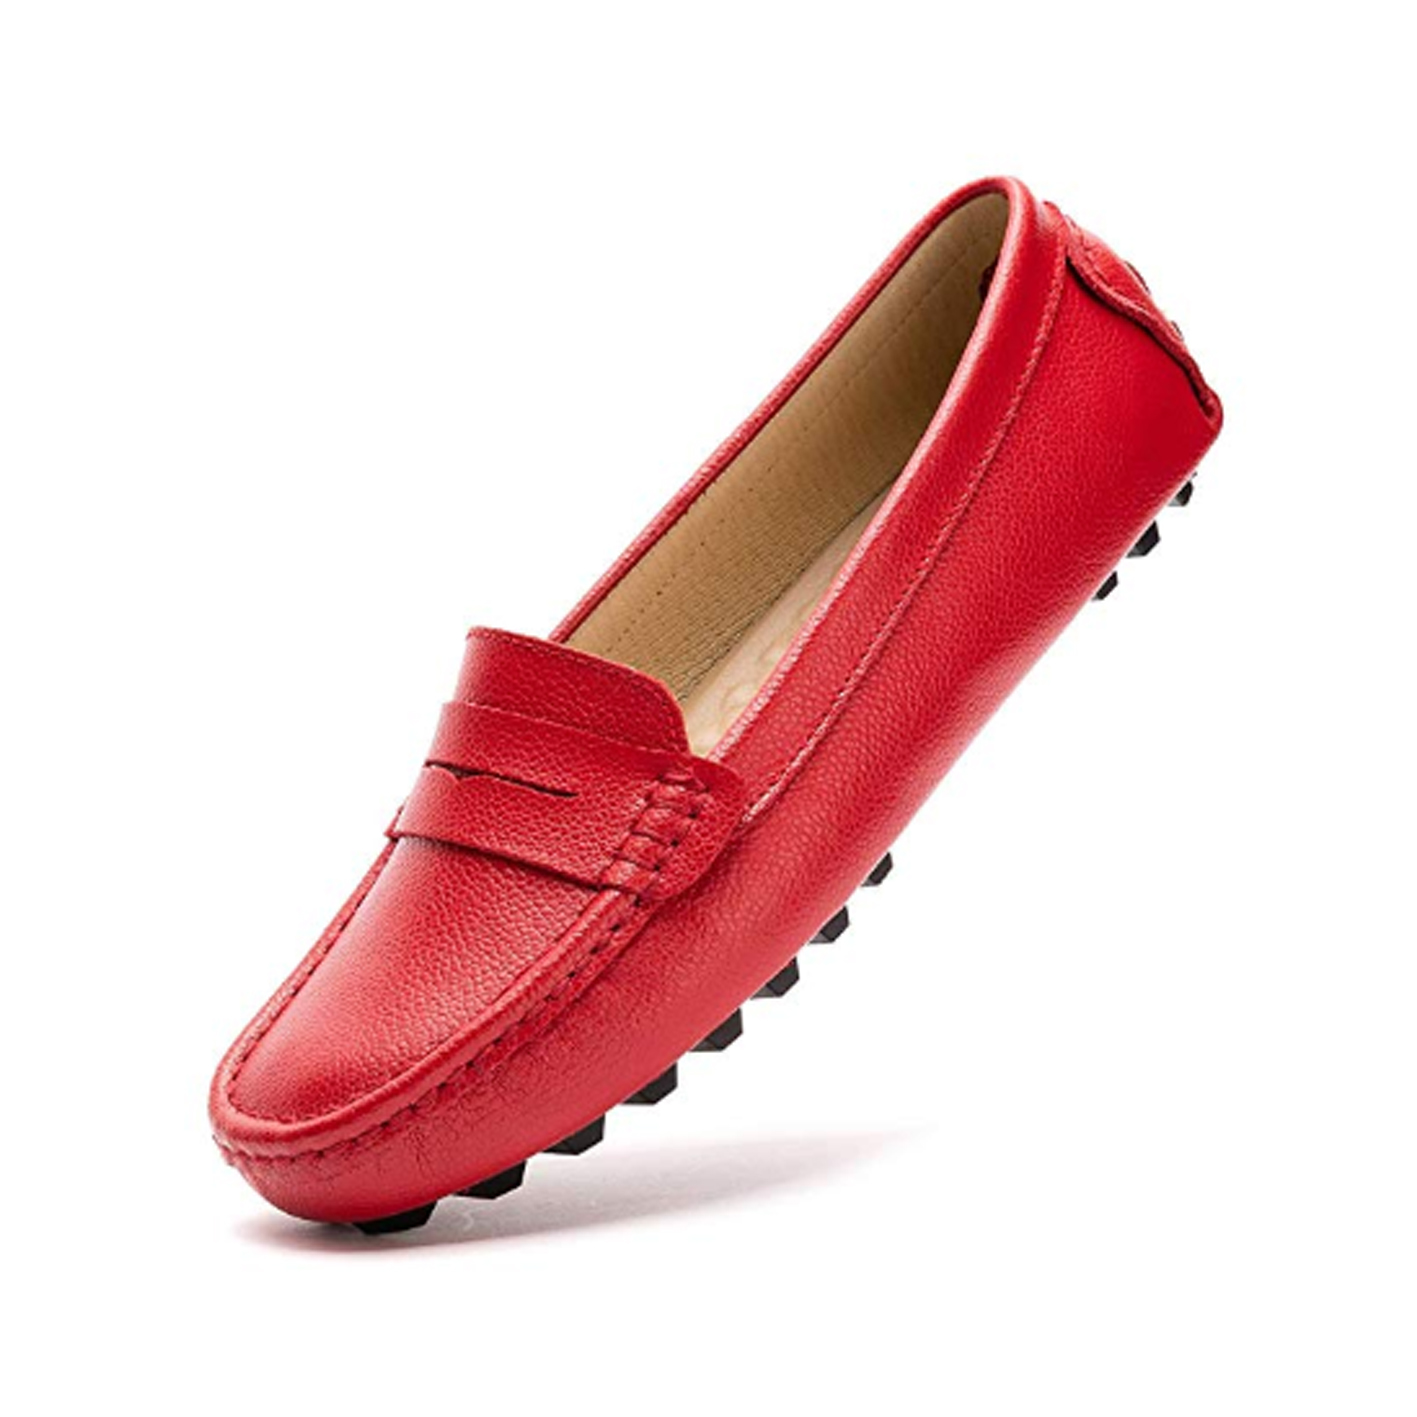 Artisure Women's Classic Genuine Leather Penny Loafers - Minimalist shoes that look good post by Mama Natural